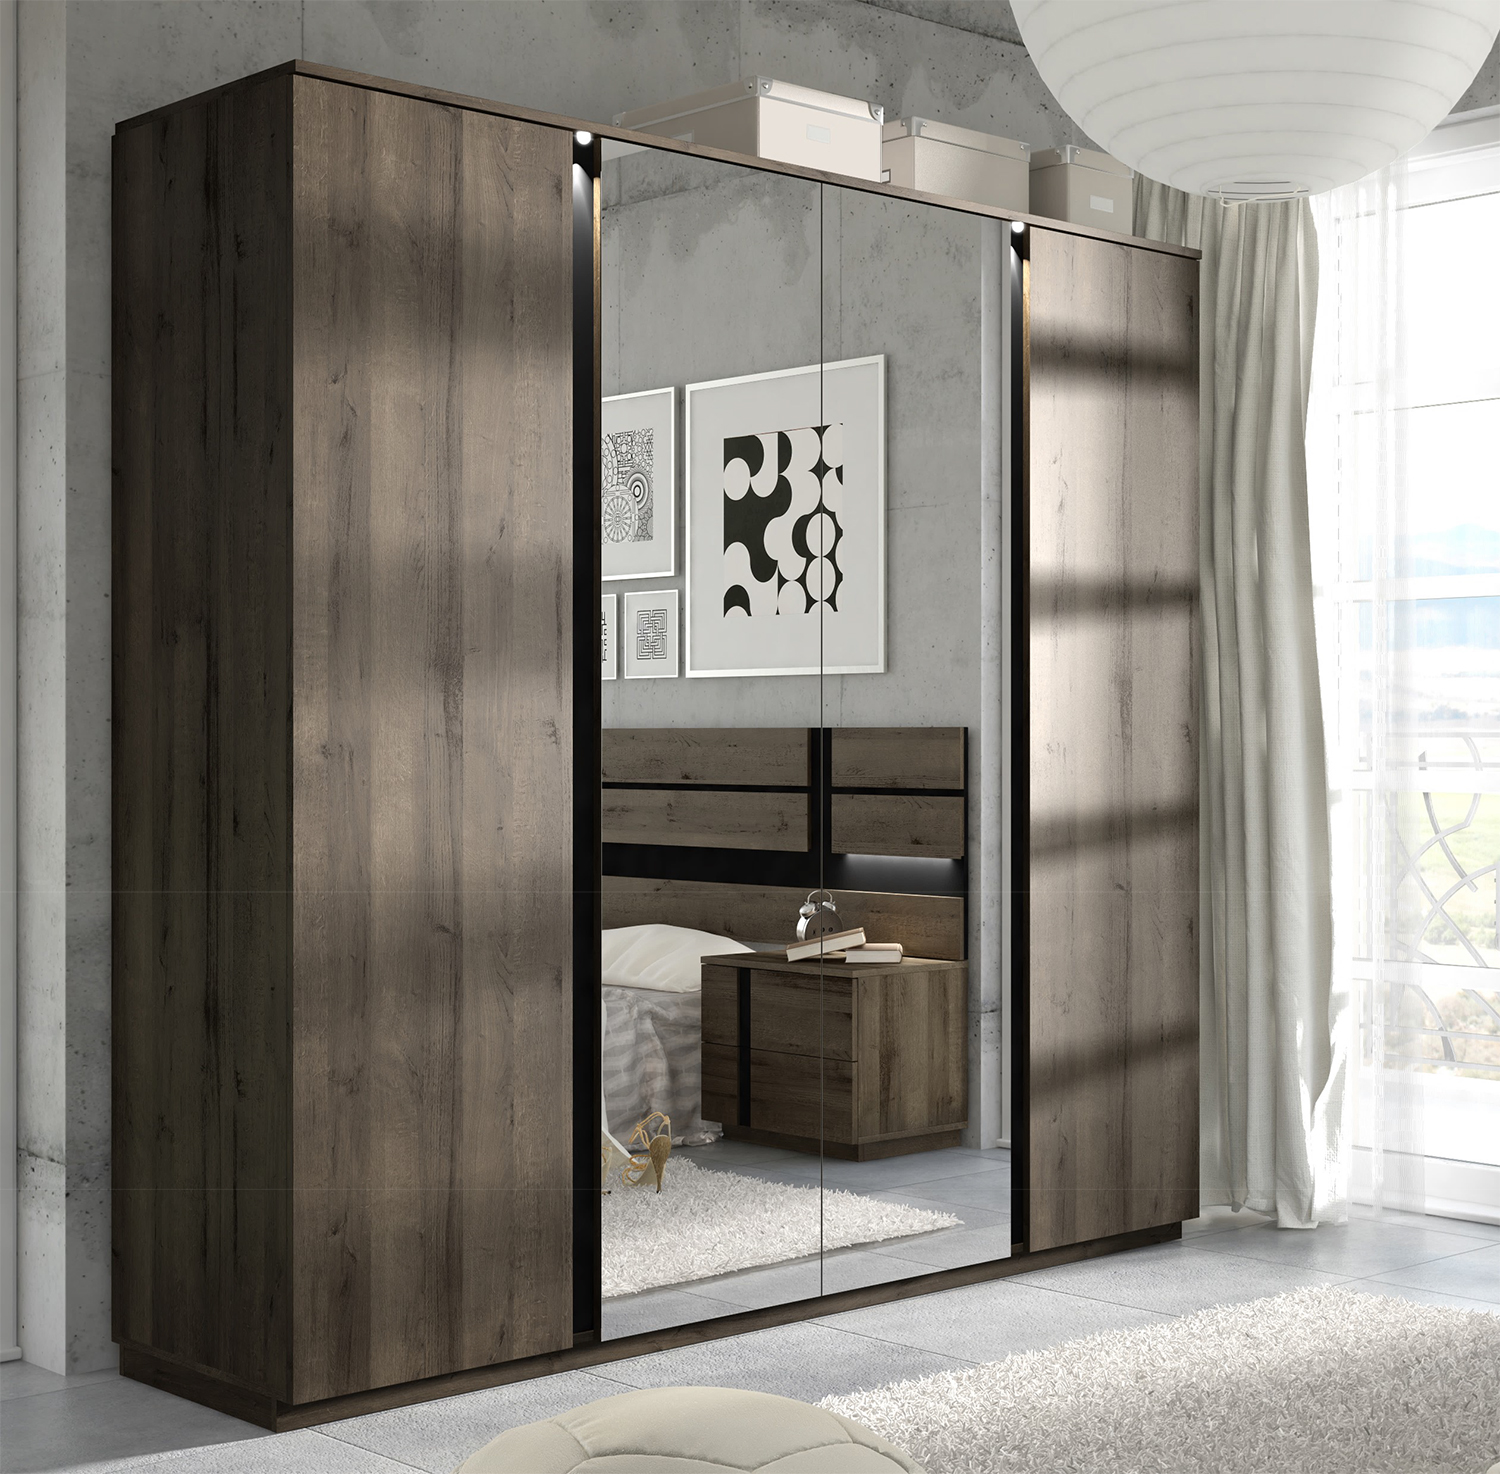 kleiderschranke dunkel. Black Bedroom Furniture Sets. Home Design Ideas